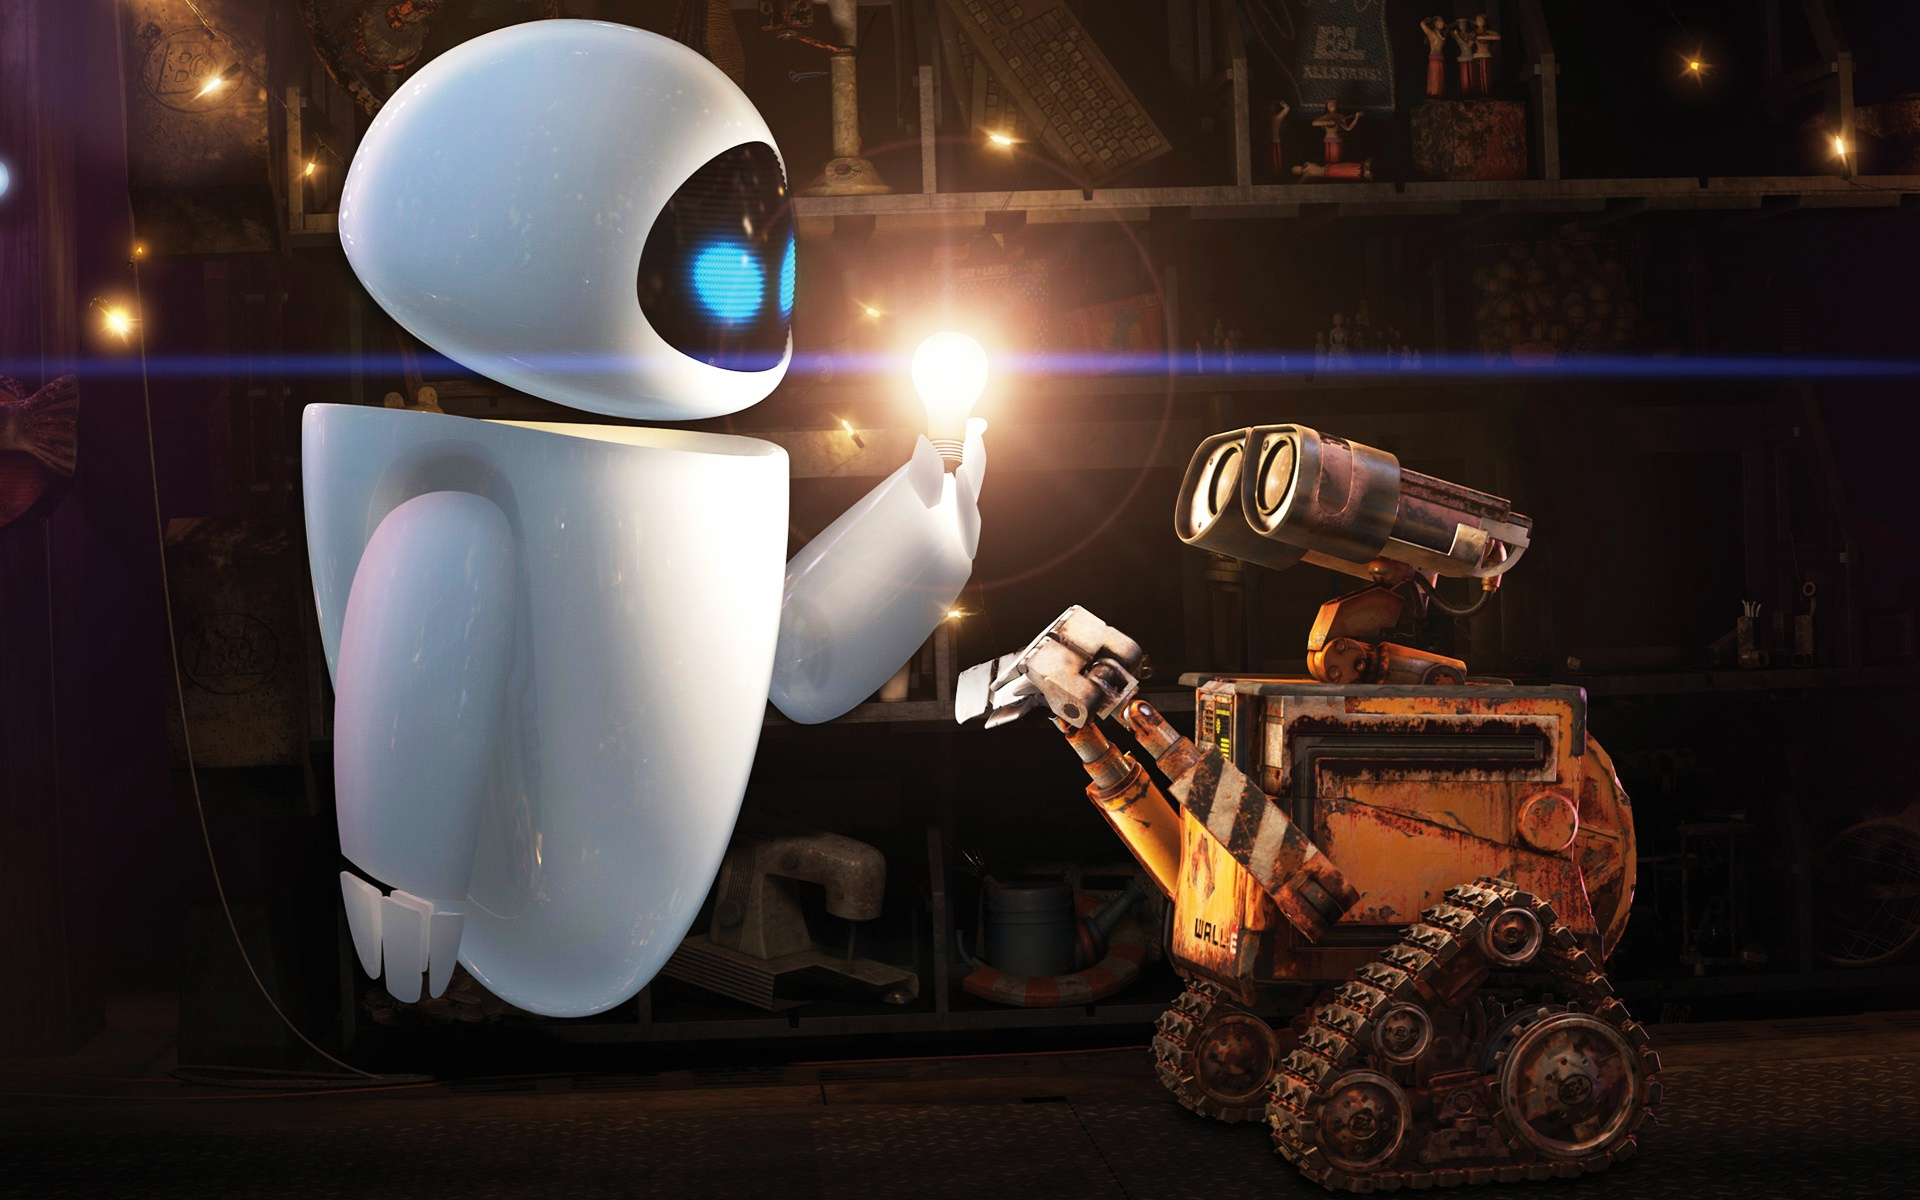 Wall E and Eve, HD Movies, 4k Wallpapers, Images, Backgrounds